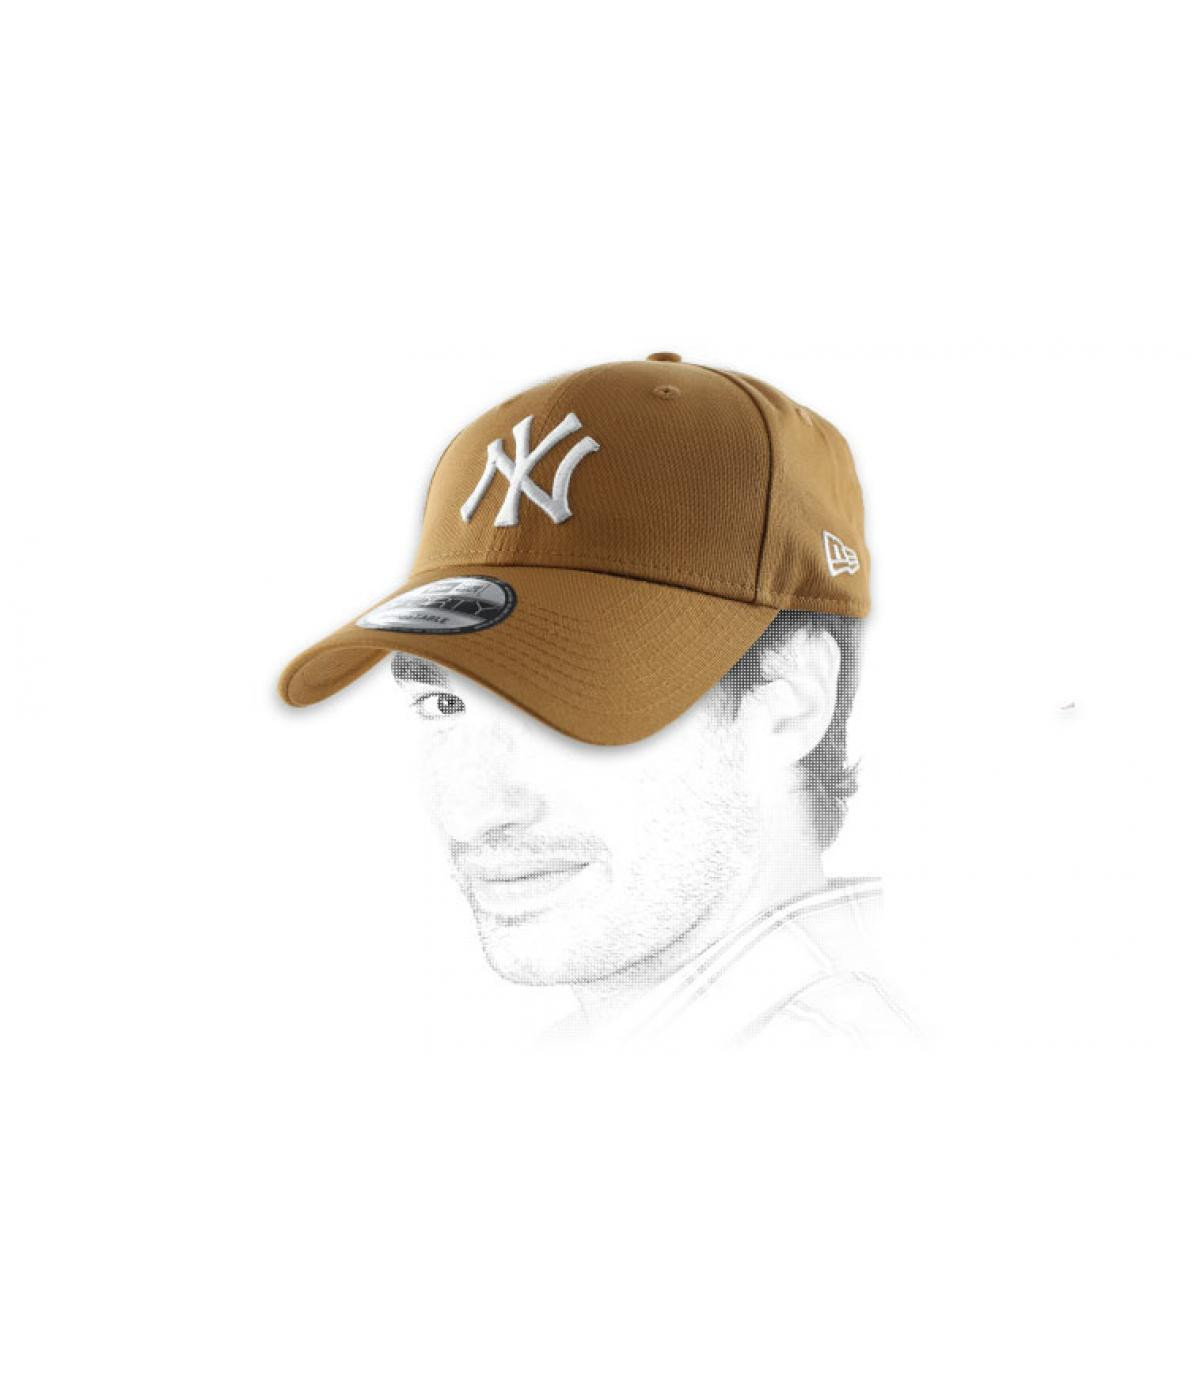 Casquette beige broderie NY